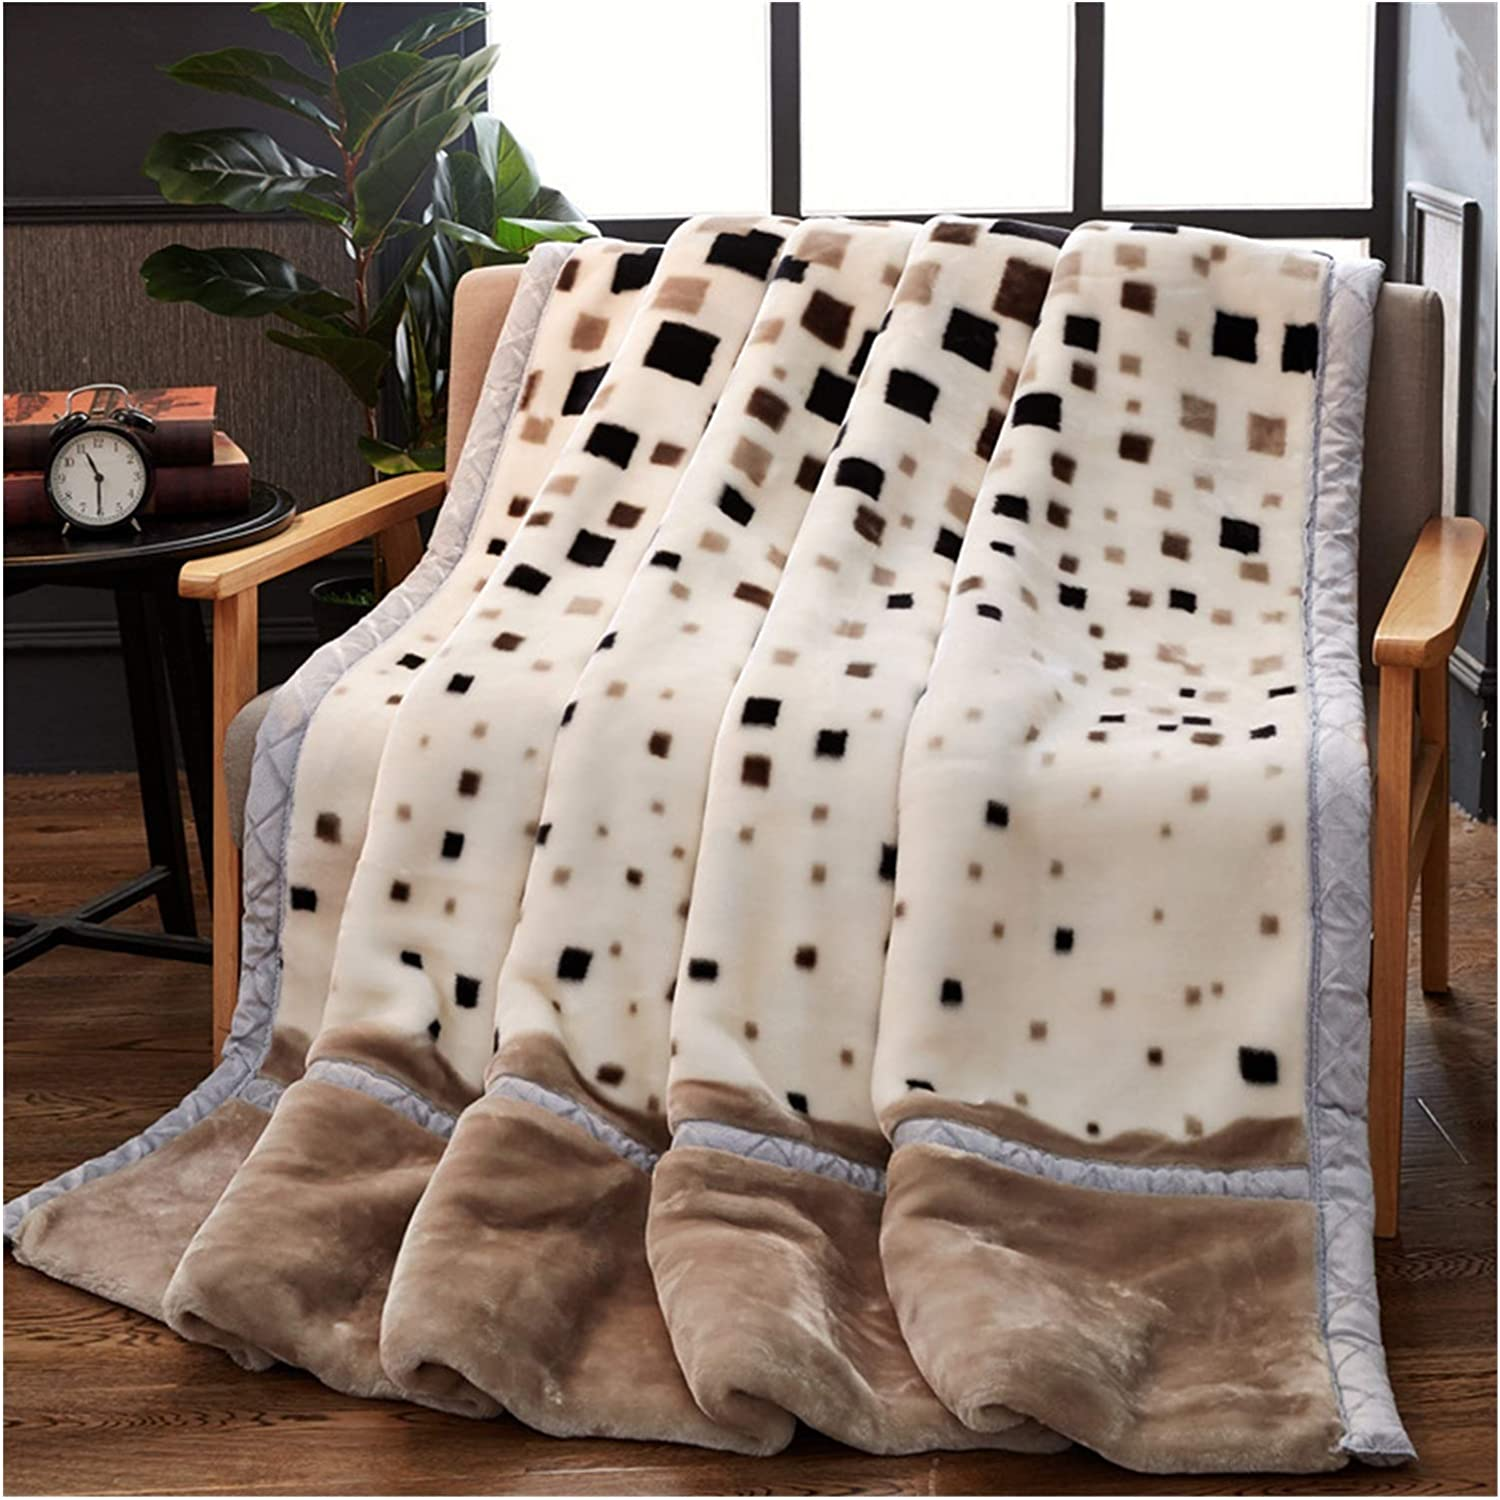 Translated JDJD Double Layer Winter Thicken Weighted Blanket Raschel Industry No. 1 Plush